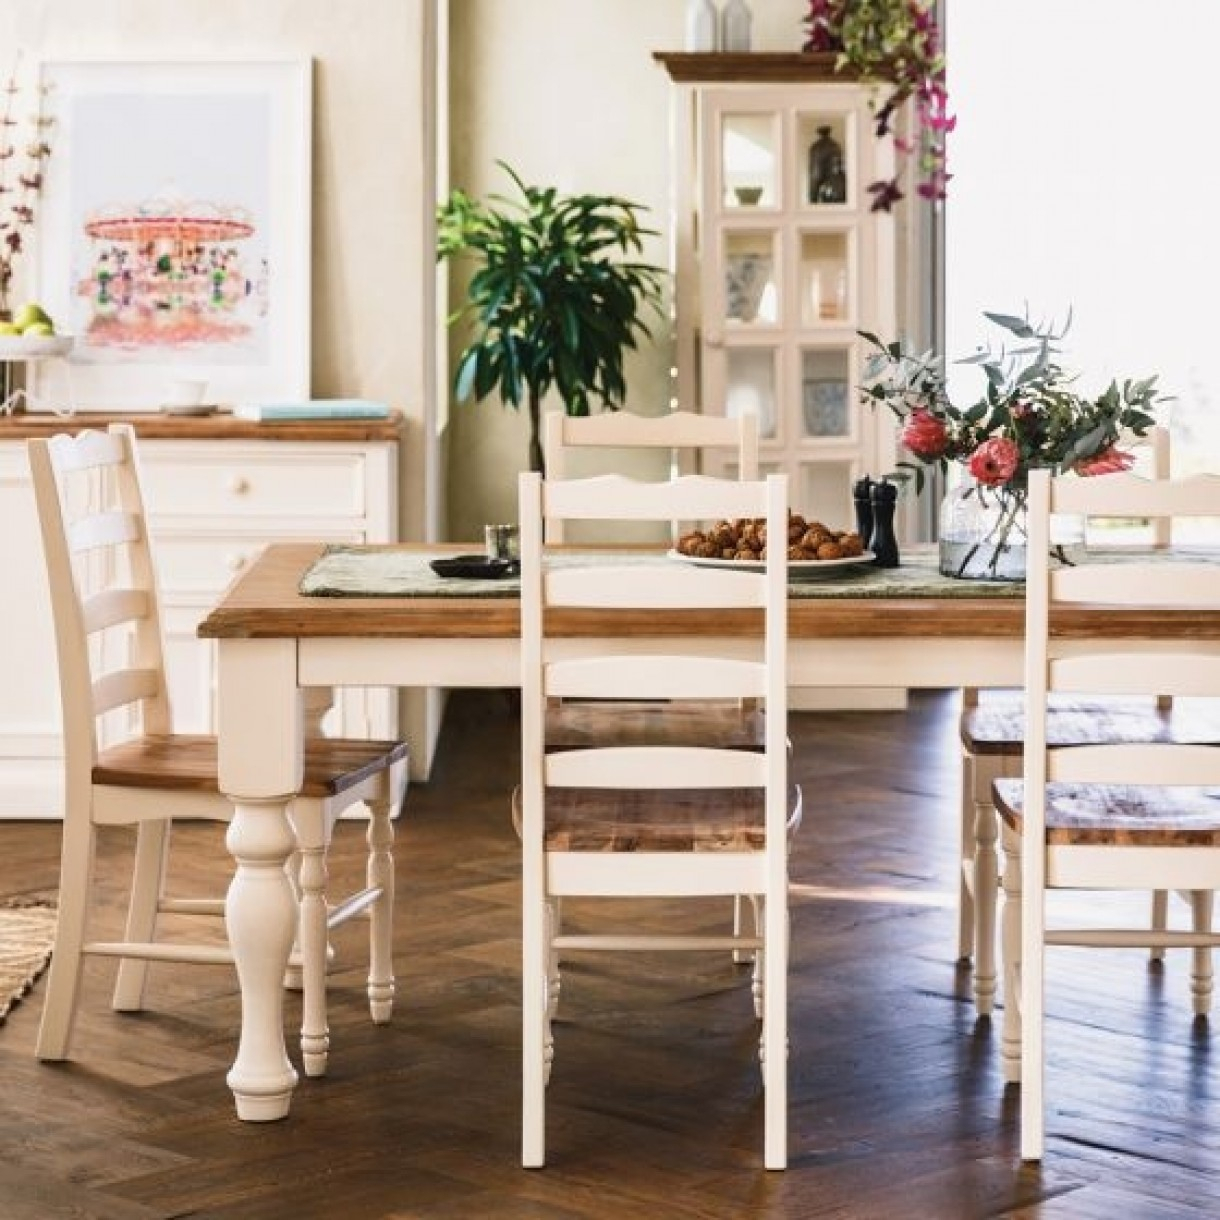 Mansfield Dining Table 2100 With 6 Mansfield Chairs Package For Mansfield Beige Linen Sofa Chairs (Image 16 of 25)